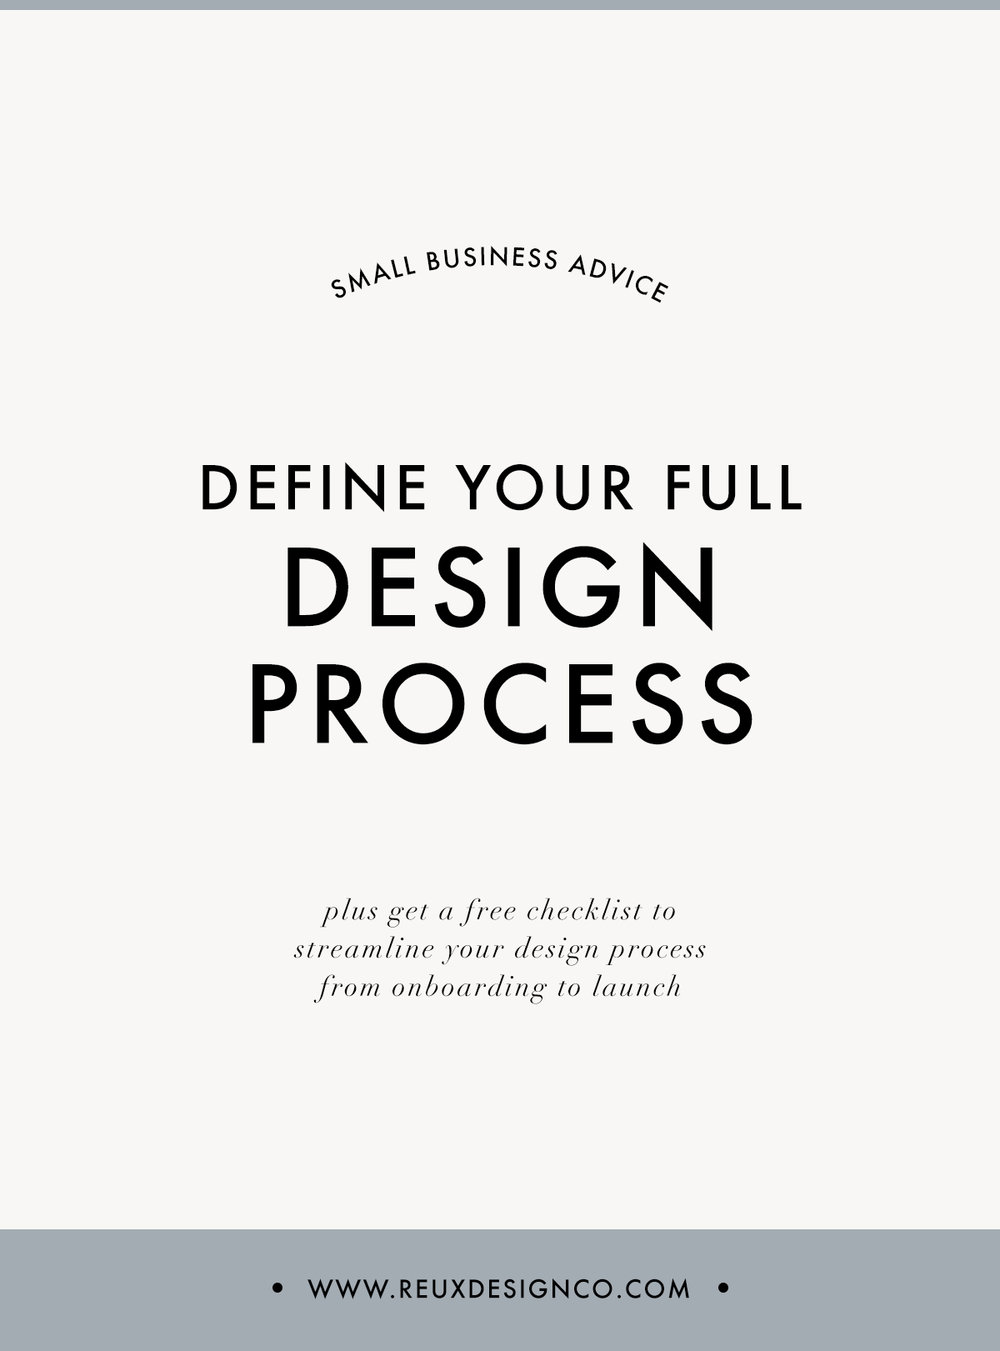 define and streamline your design process | Reux Design Co.